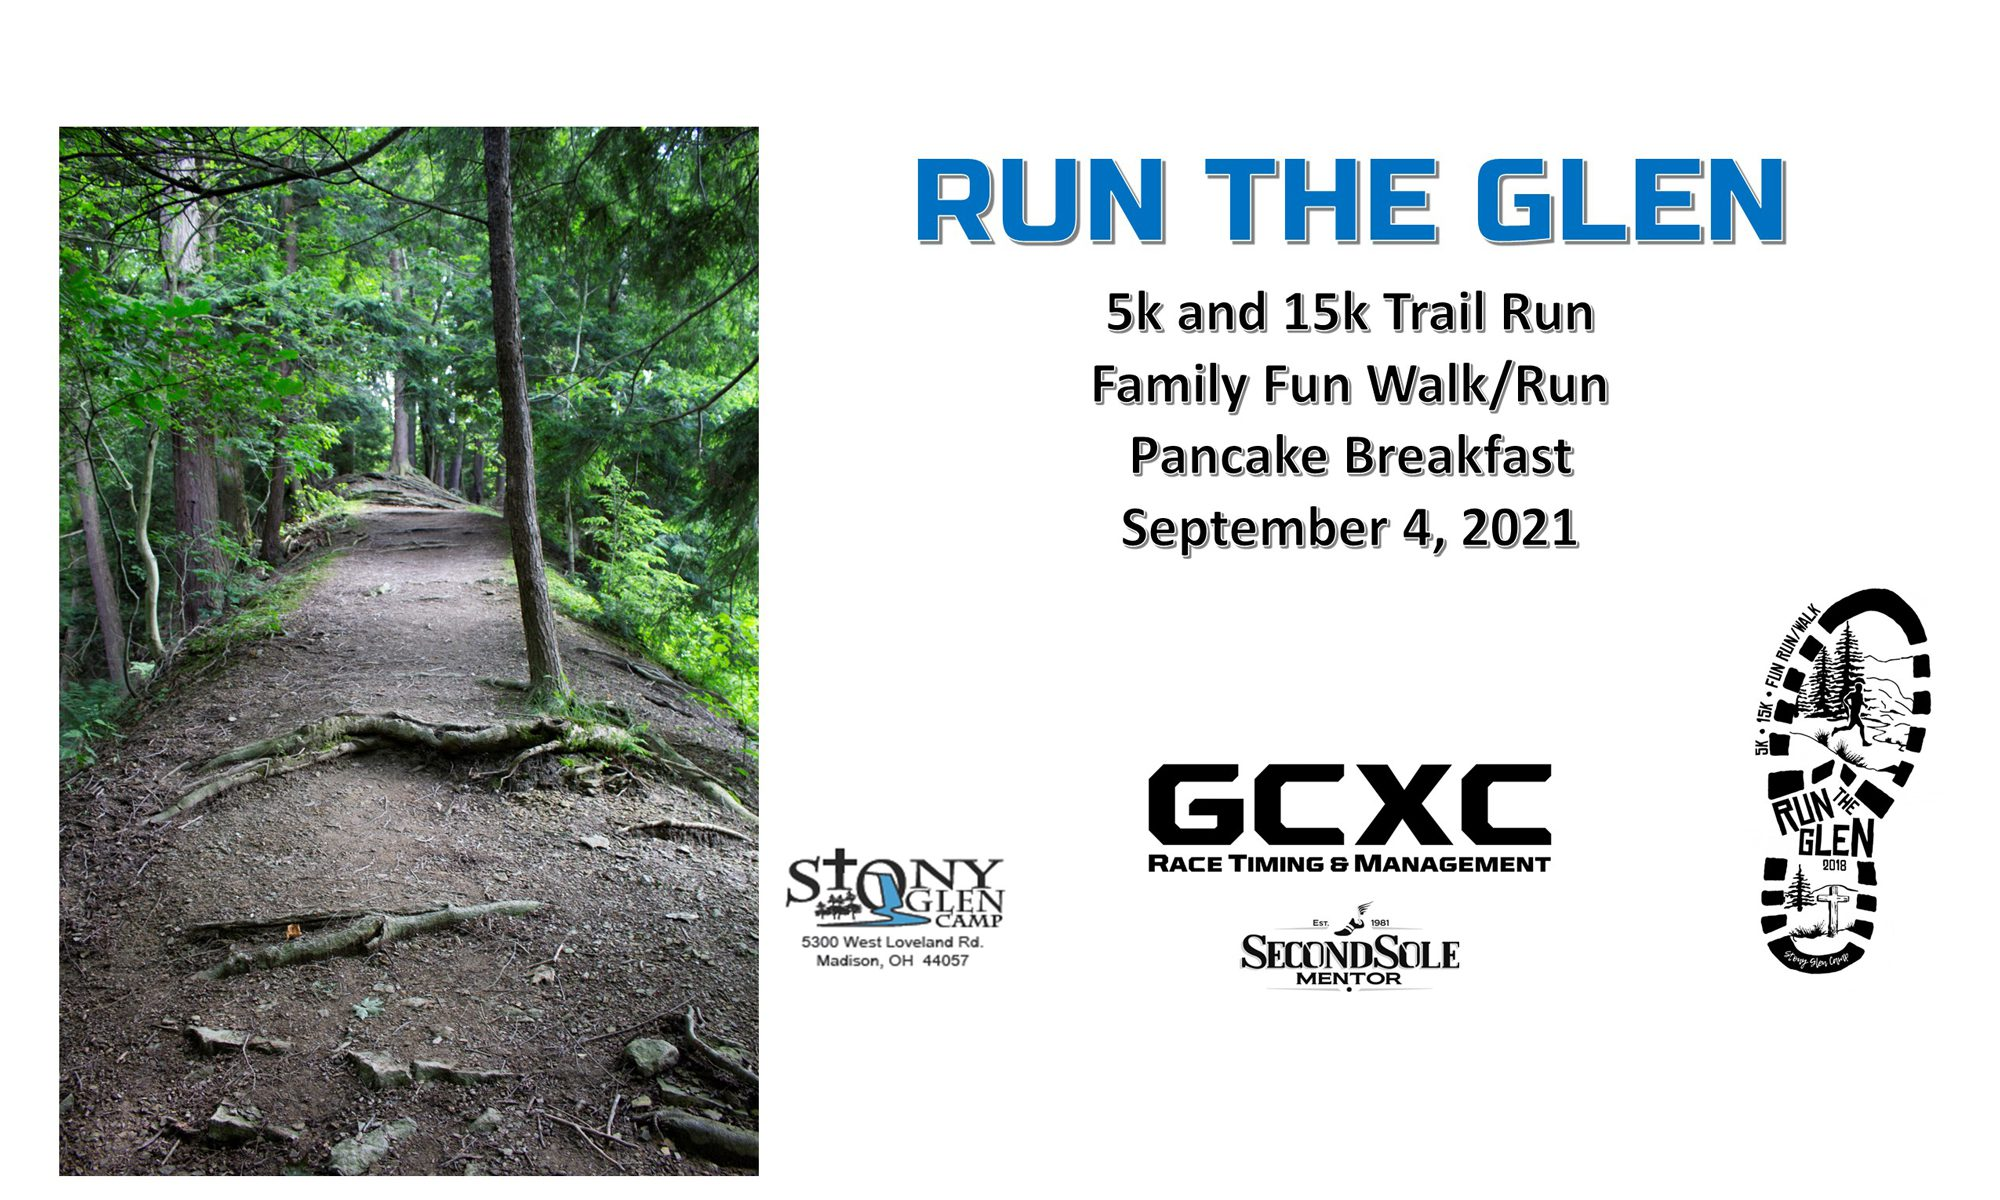 Run The Glen